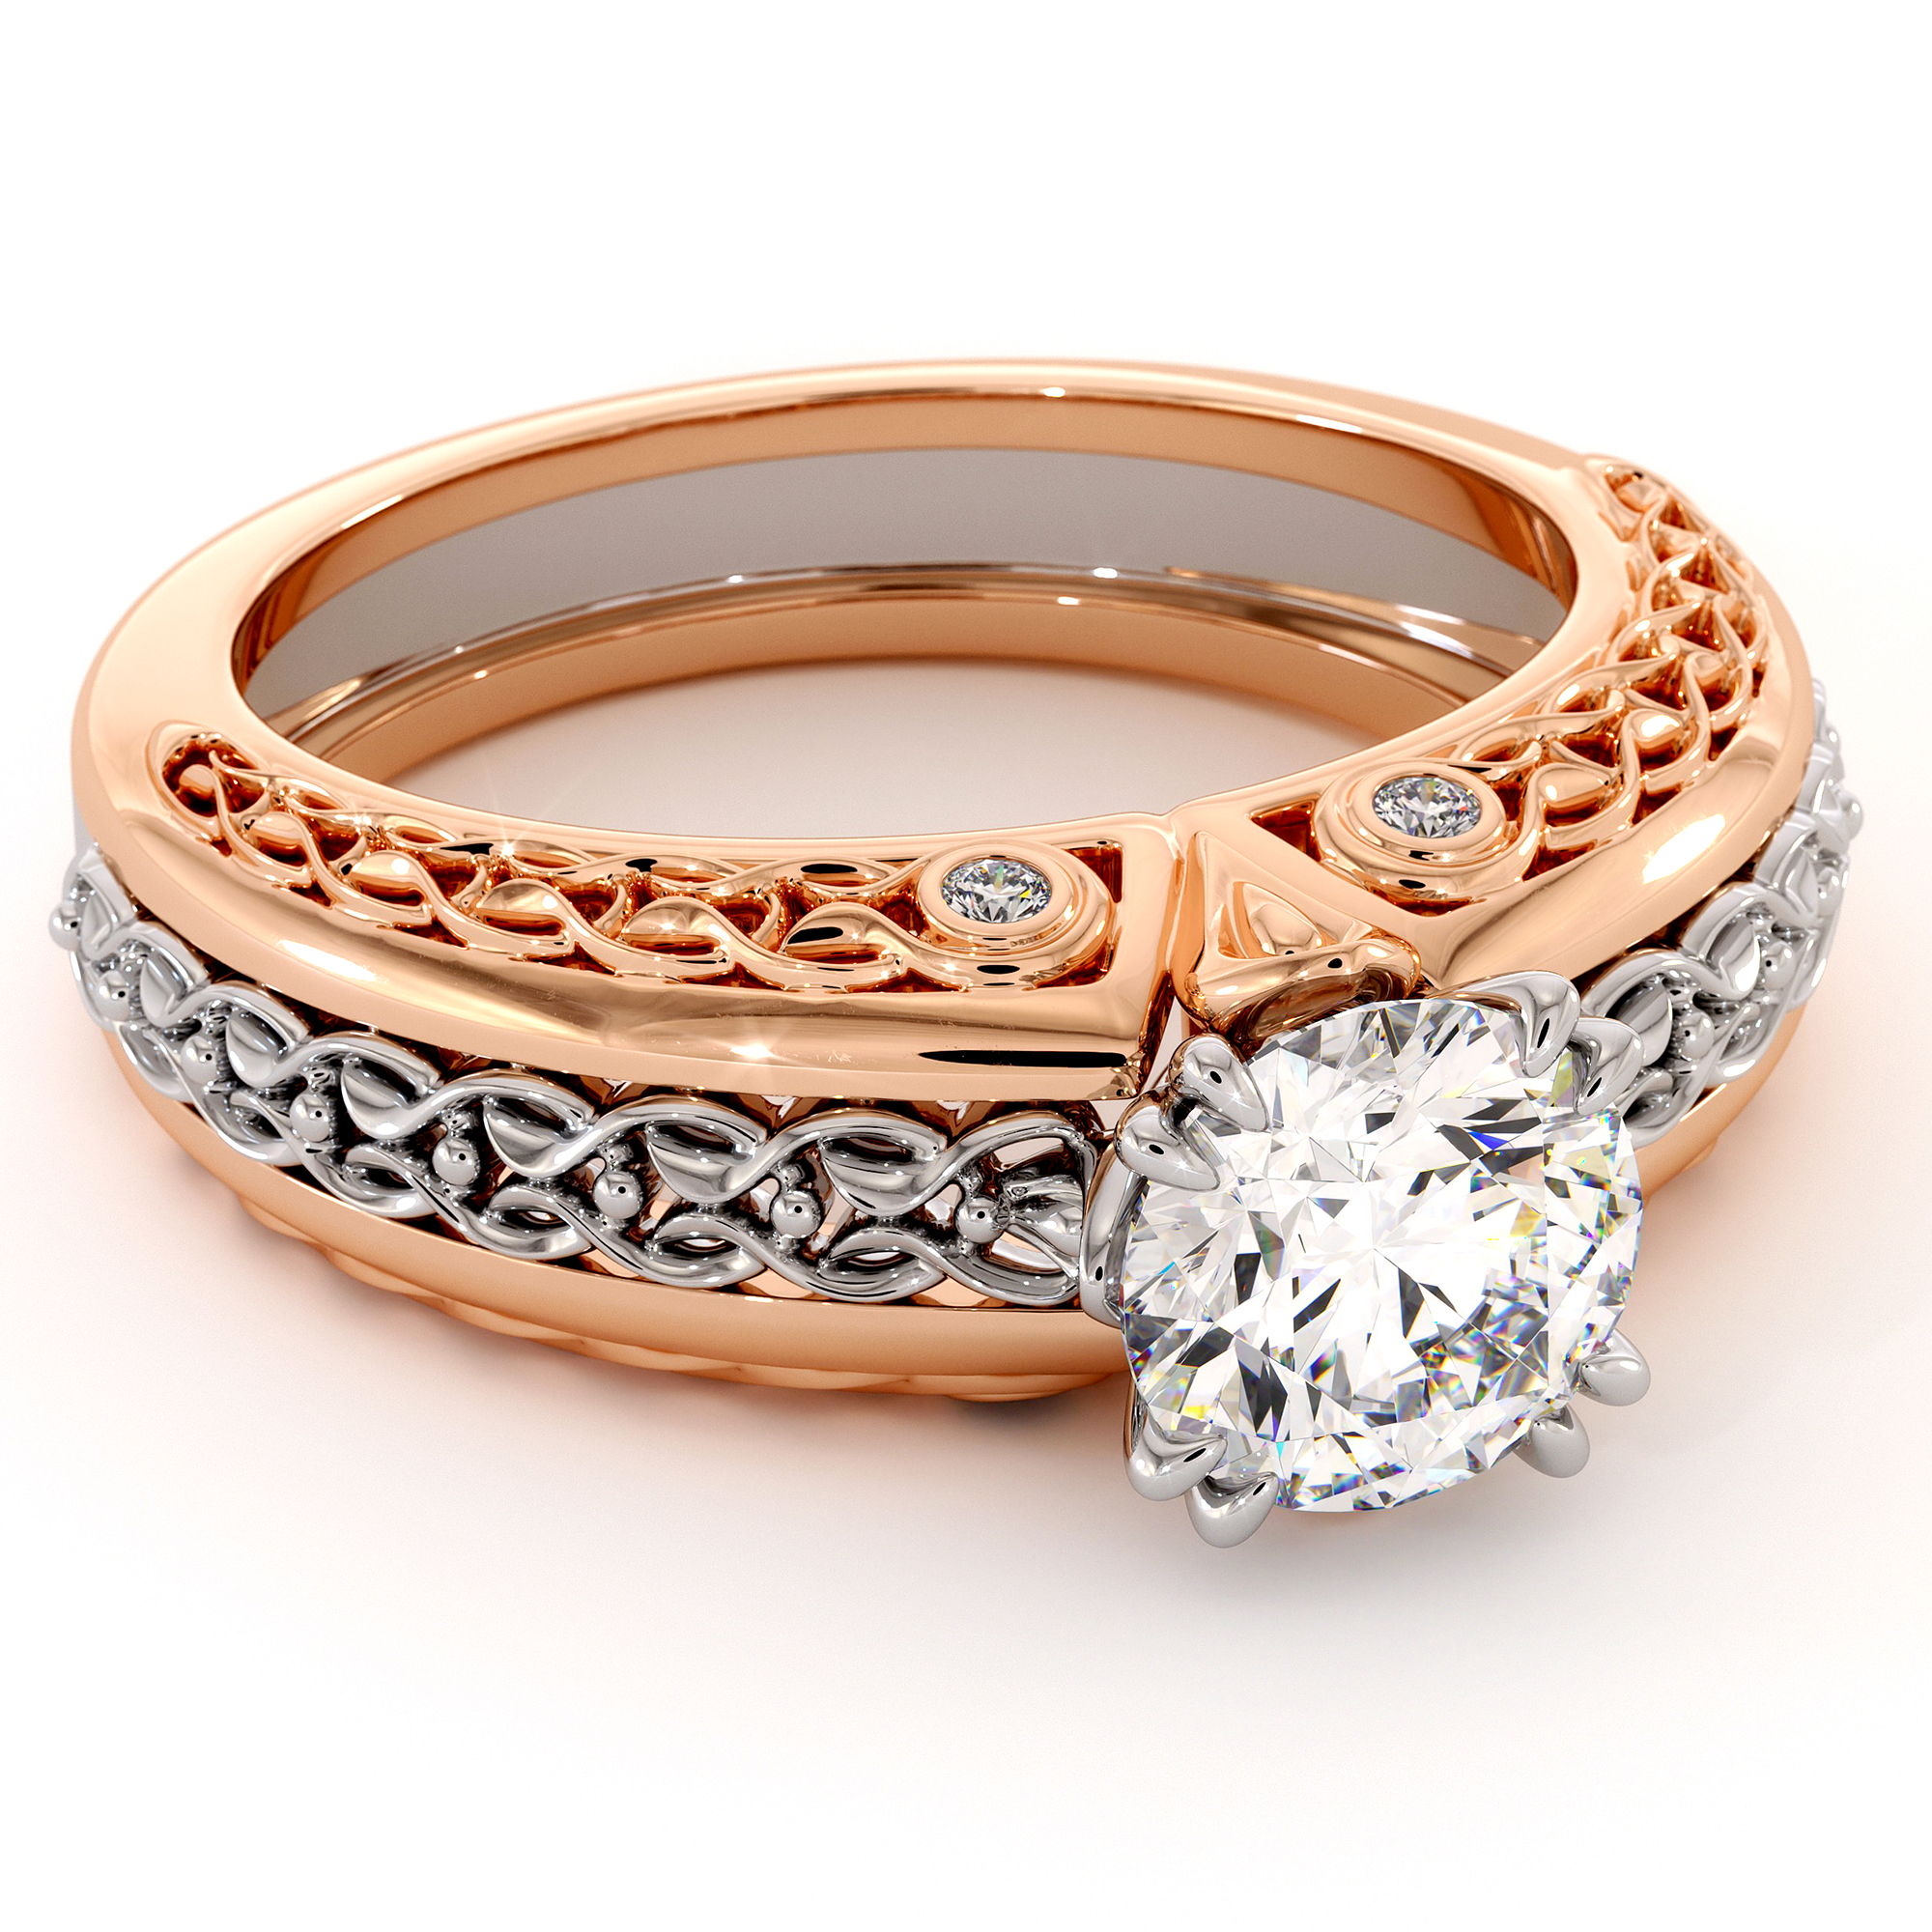 Princely White And Rose Gold Moissanite Engagement Ring